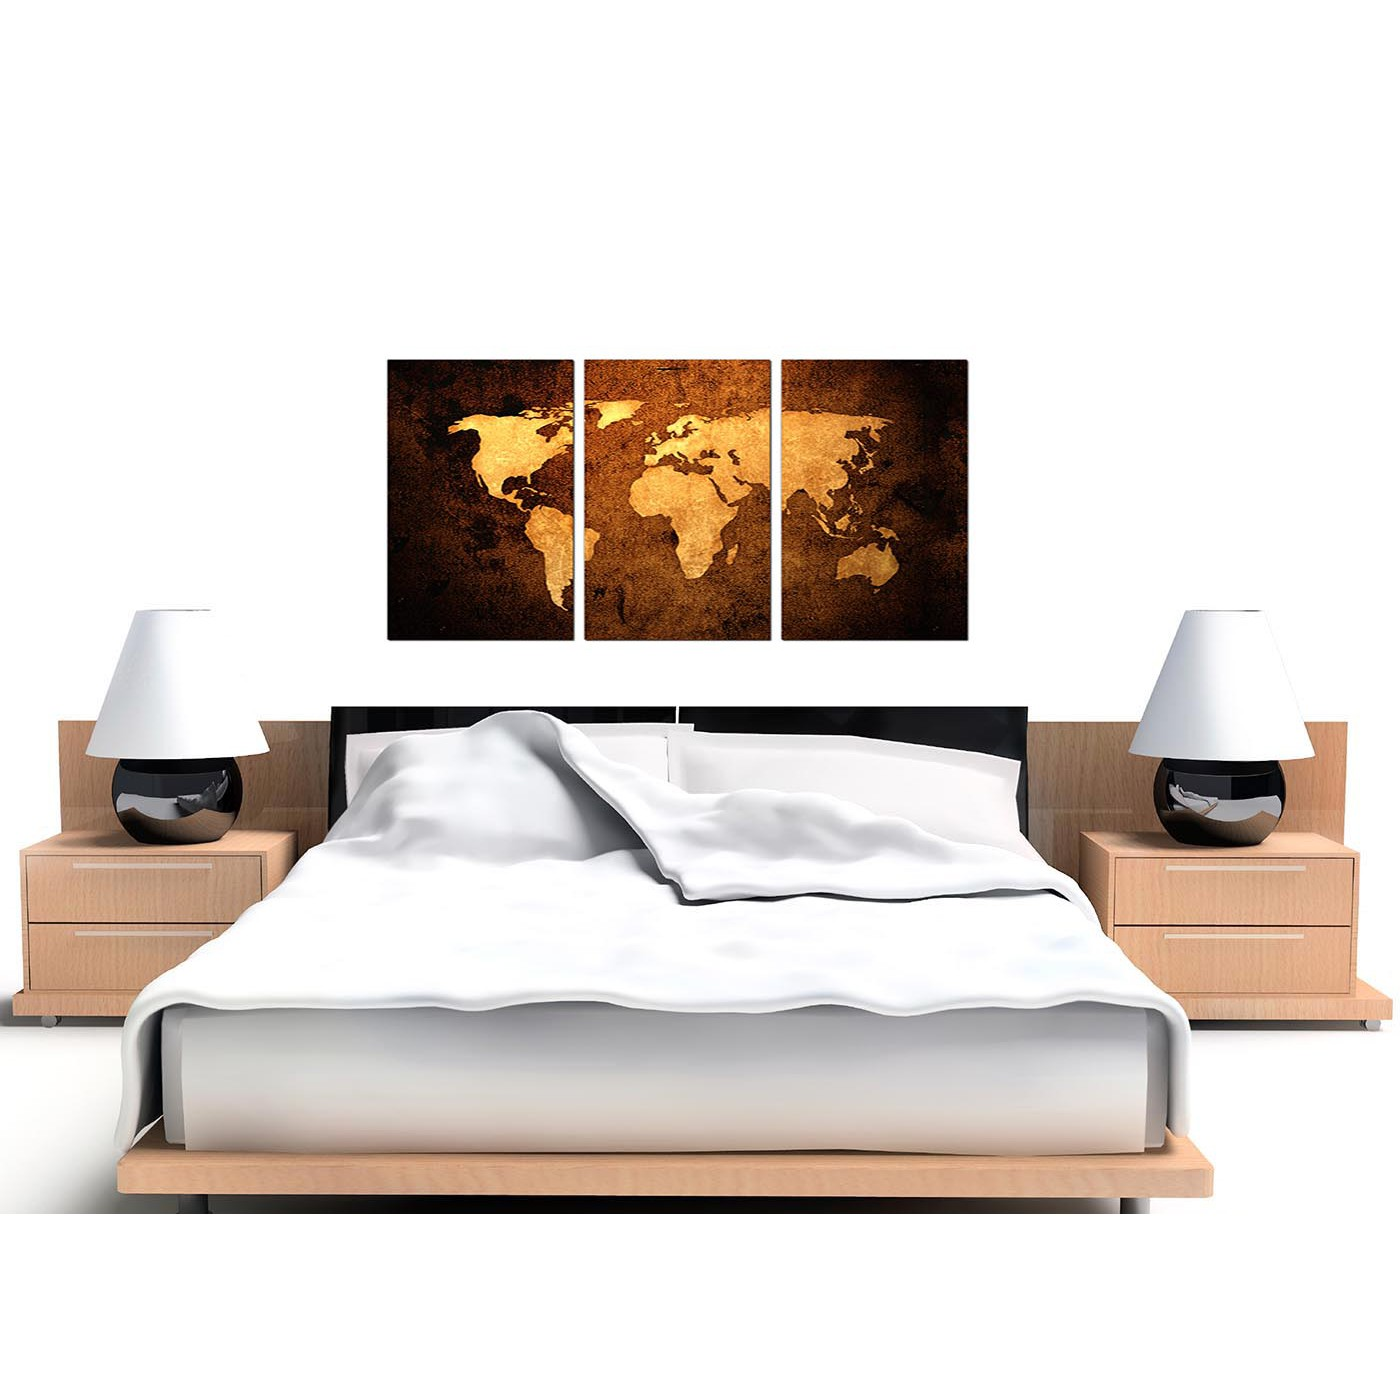 Vintage world map canvas wall art set of 3 for your bedroom display gallery item 1 3 part vintage map canvas prints uk gumiabroncs Image collections